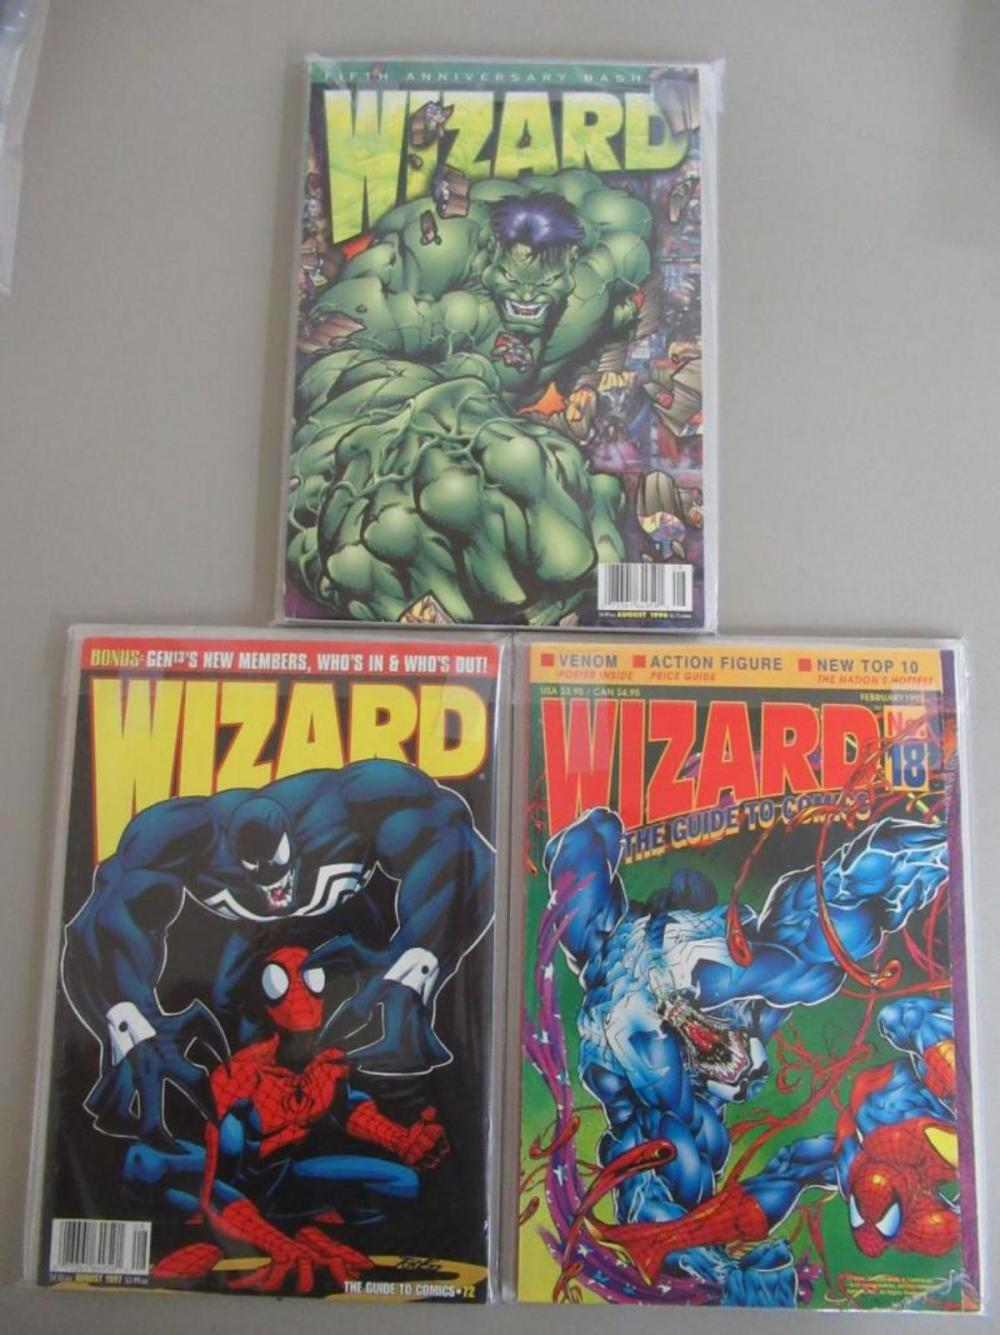 Lot 168: 3 Wizard Graphic Novels #18, Aug 1997, Aug 1996